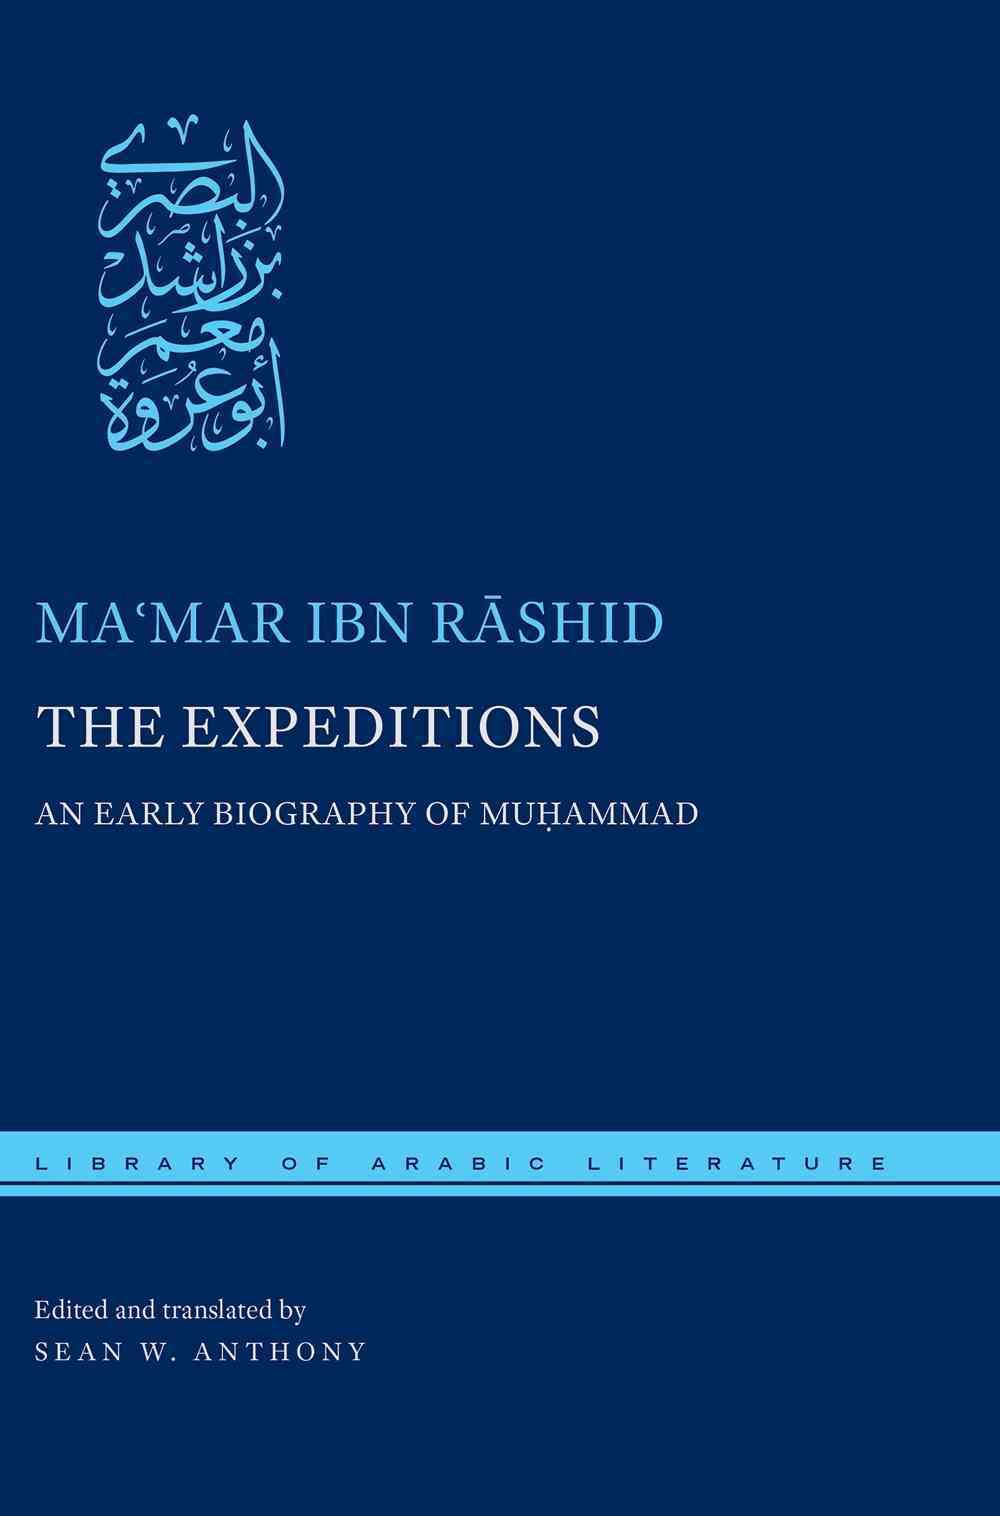 The Expeditions: An Early Biography of Muhammad